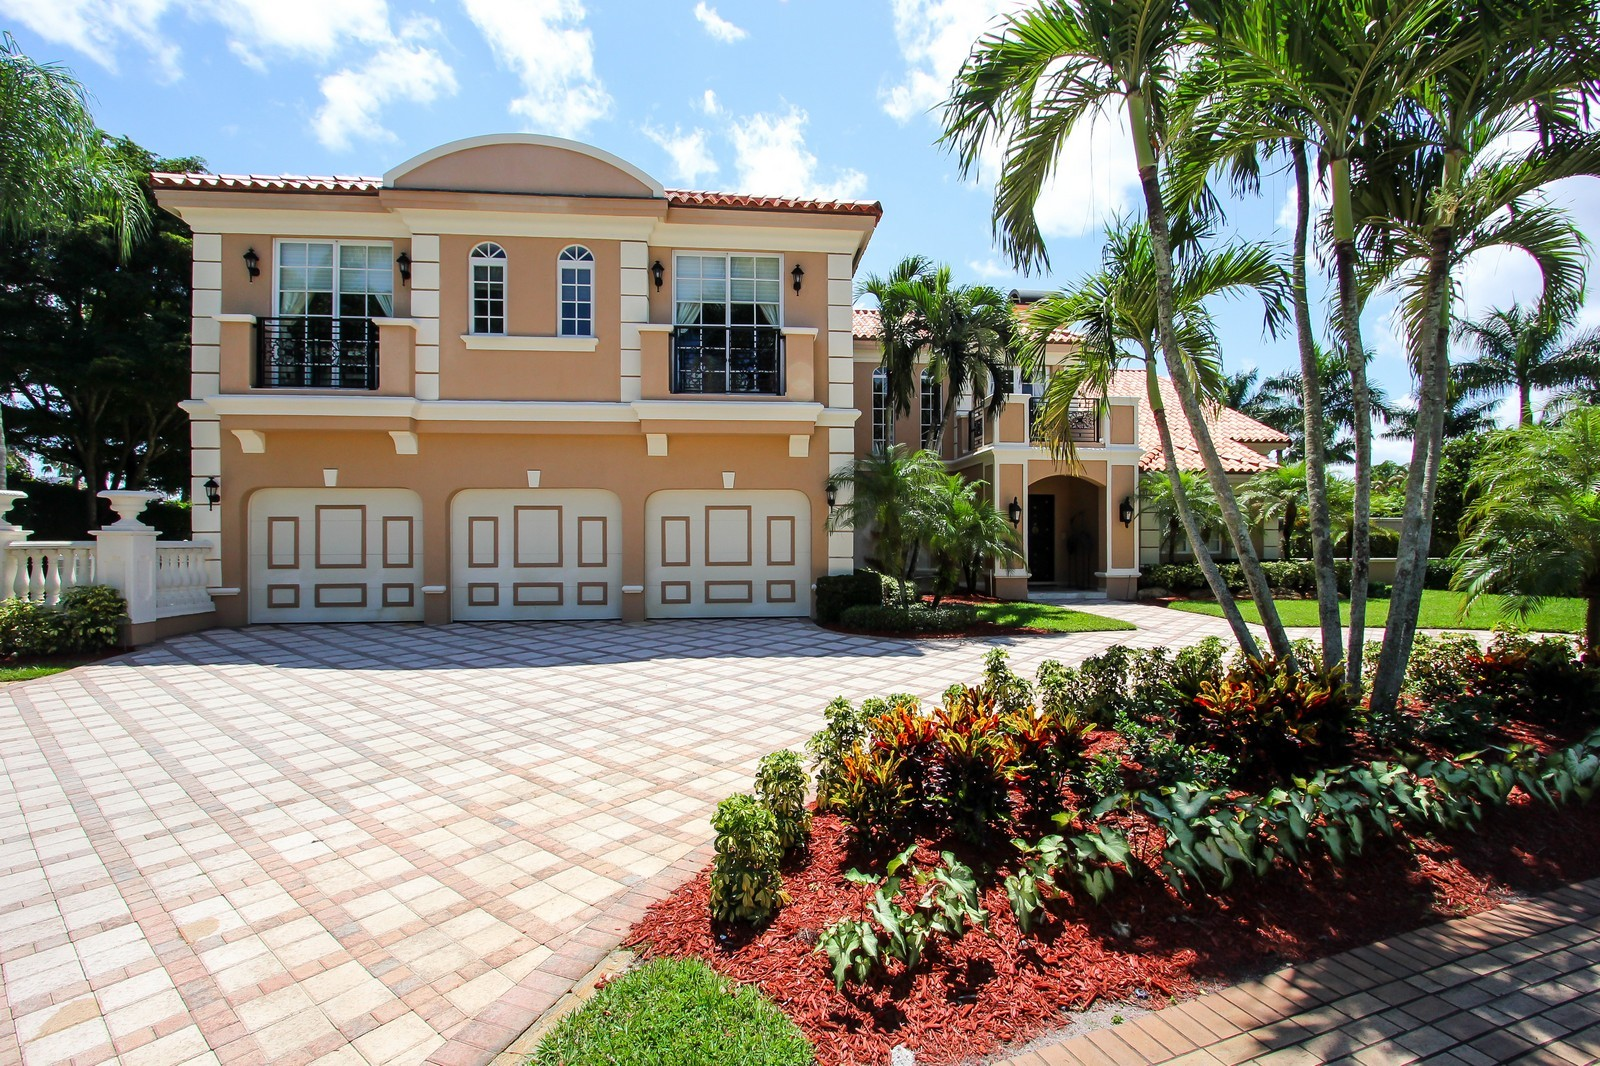 Real Estate Photography - 7015 Ayrshire Ln, Boca Raton, FL, 33496 - Front View